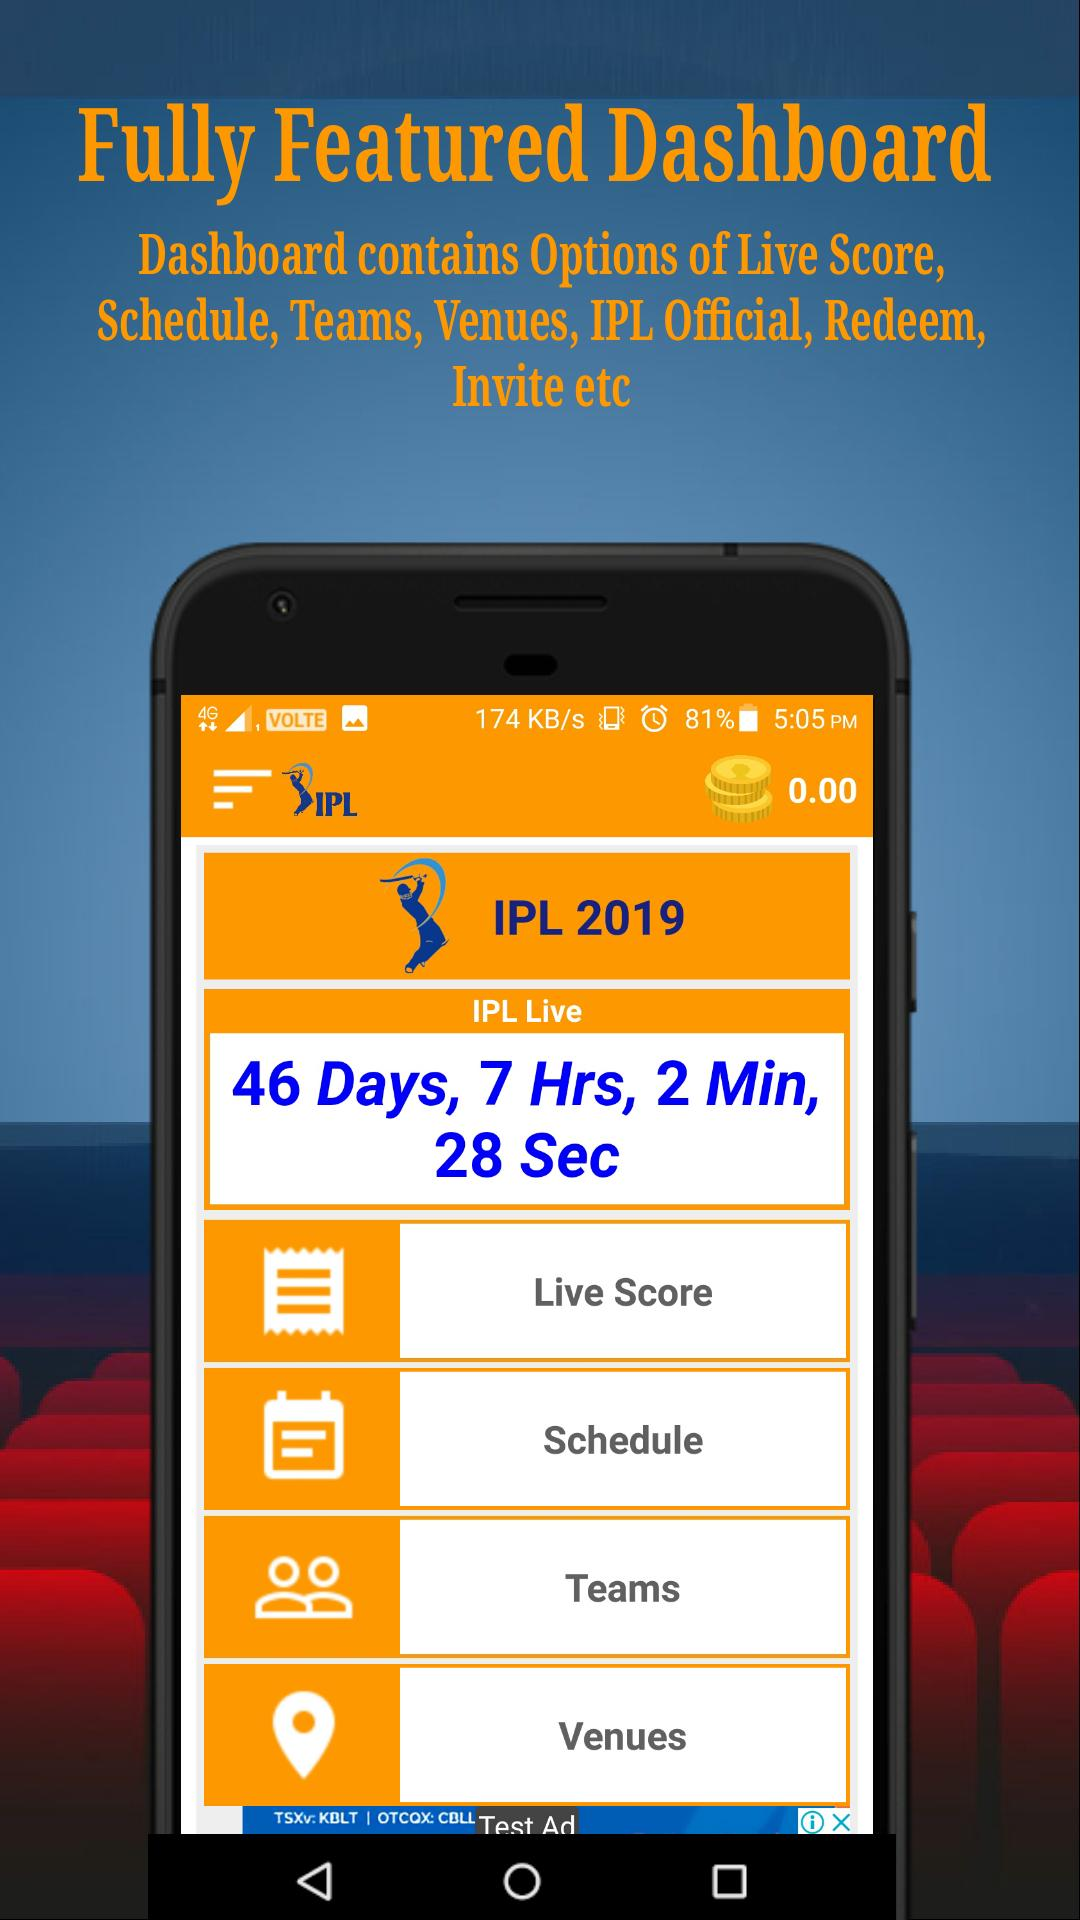 IPL 2019 + Earn Money, Live Scores, Time Table etc for